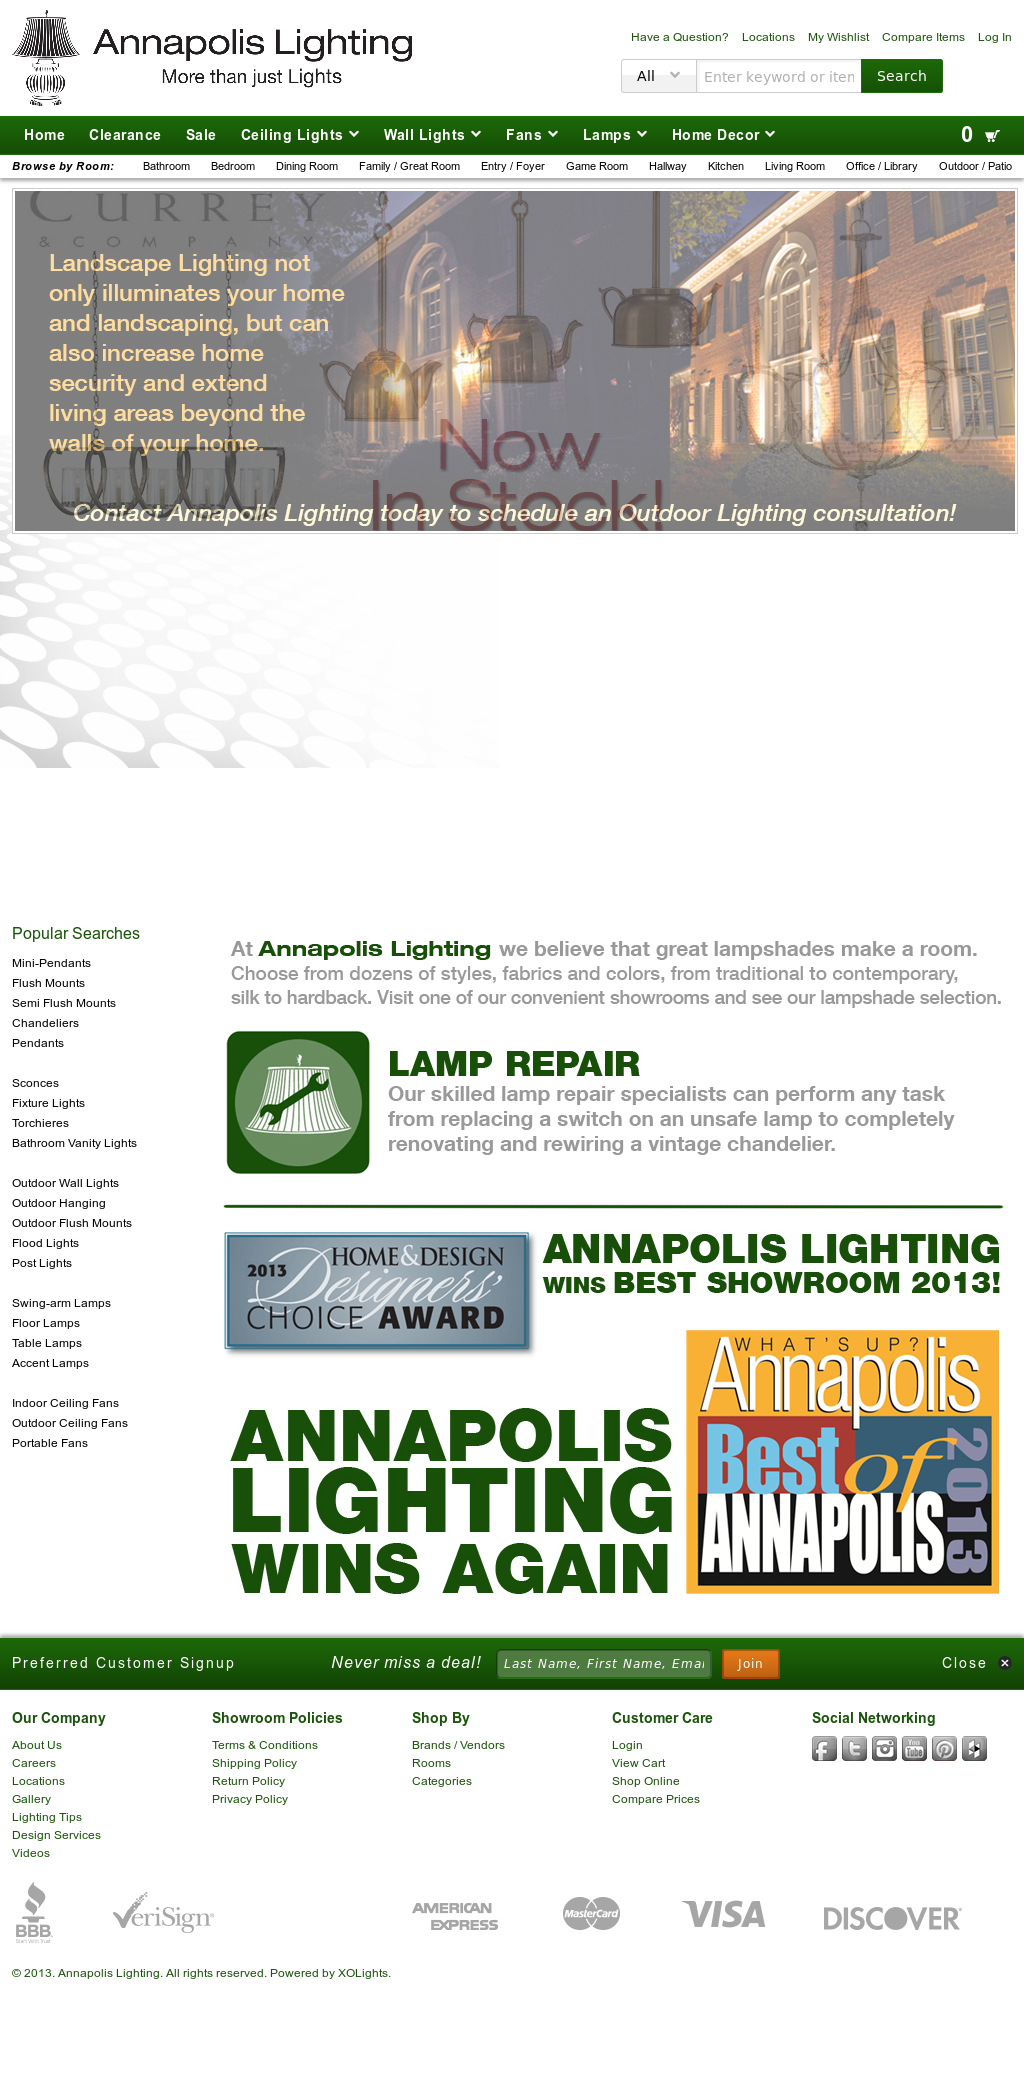 Annapolis Lighting Compeors Revenue And Employees